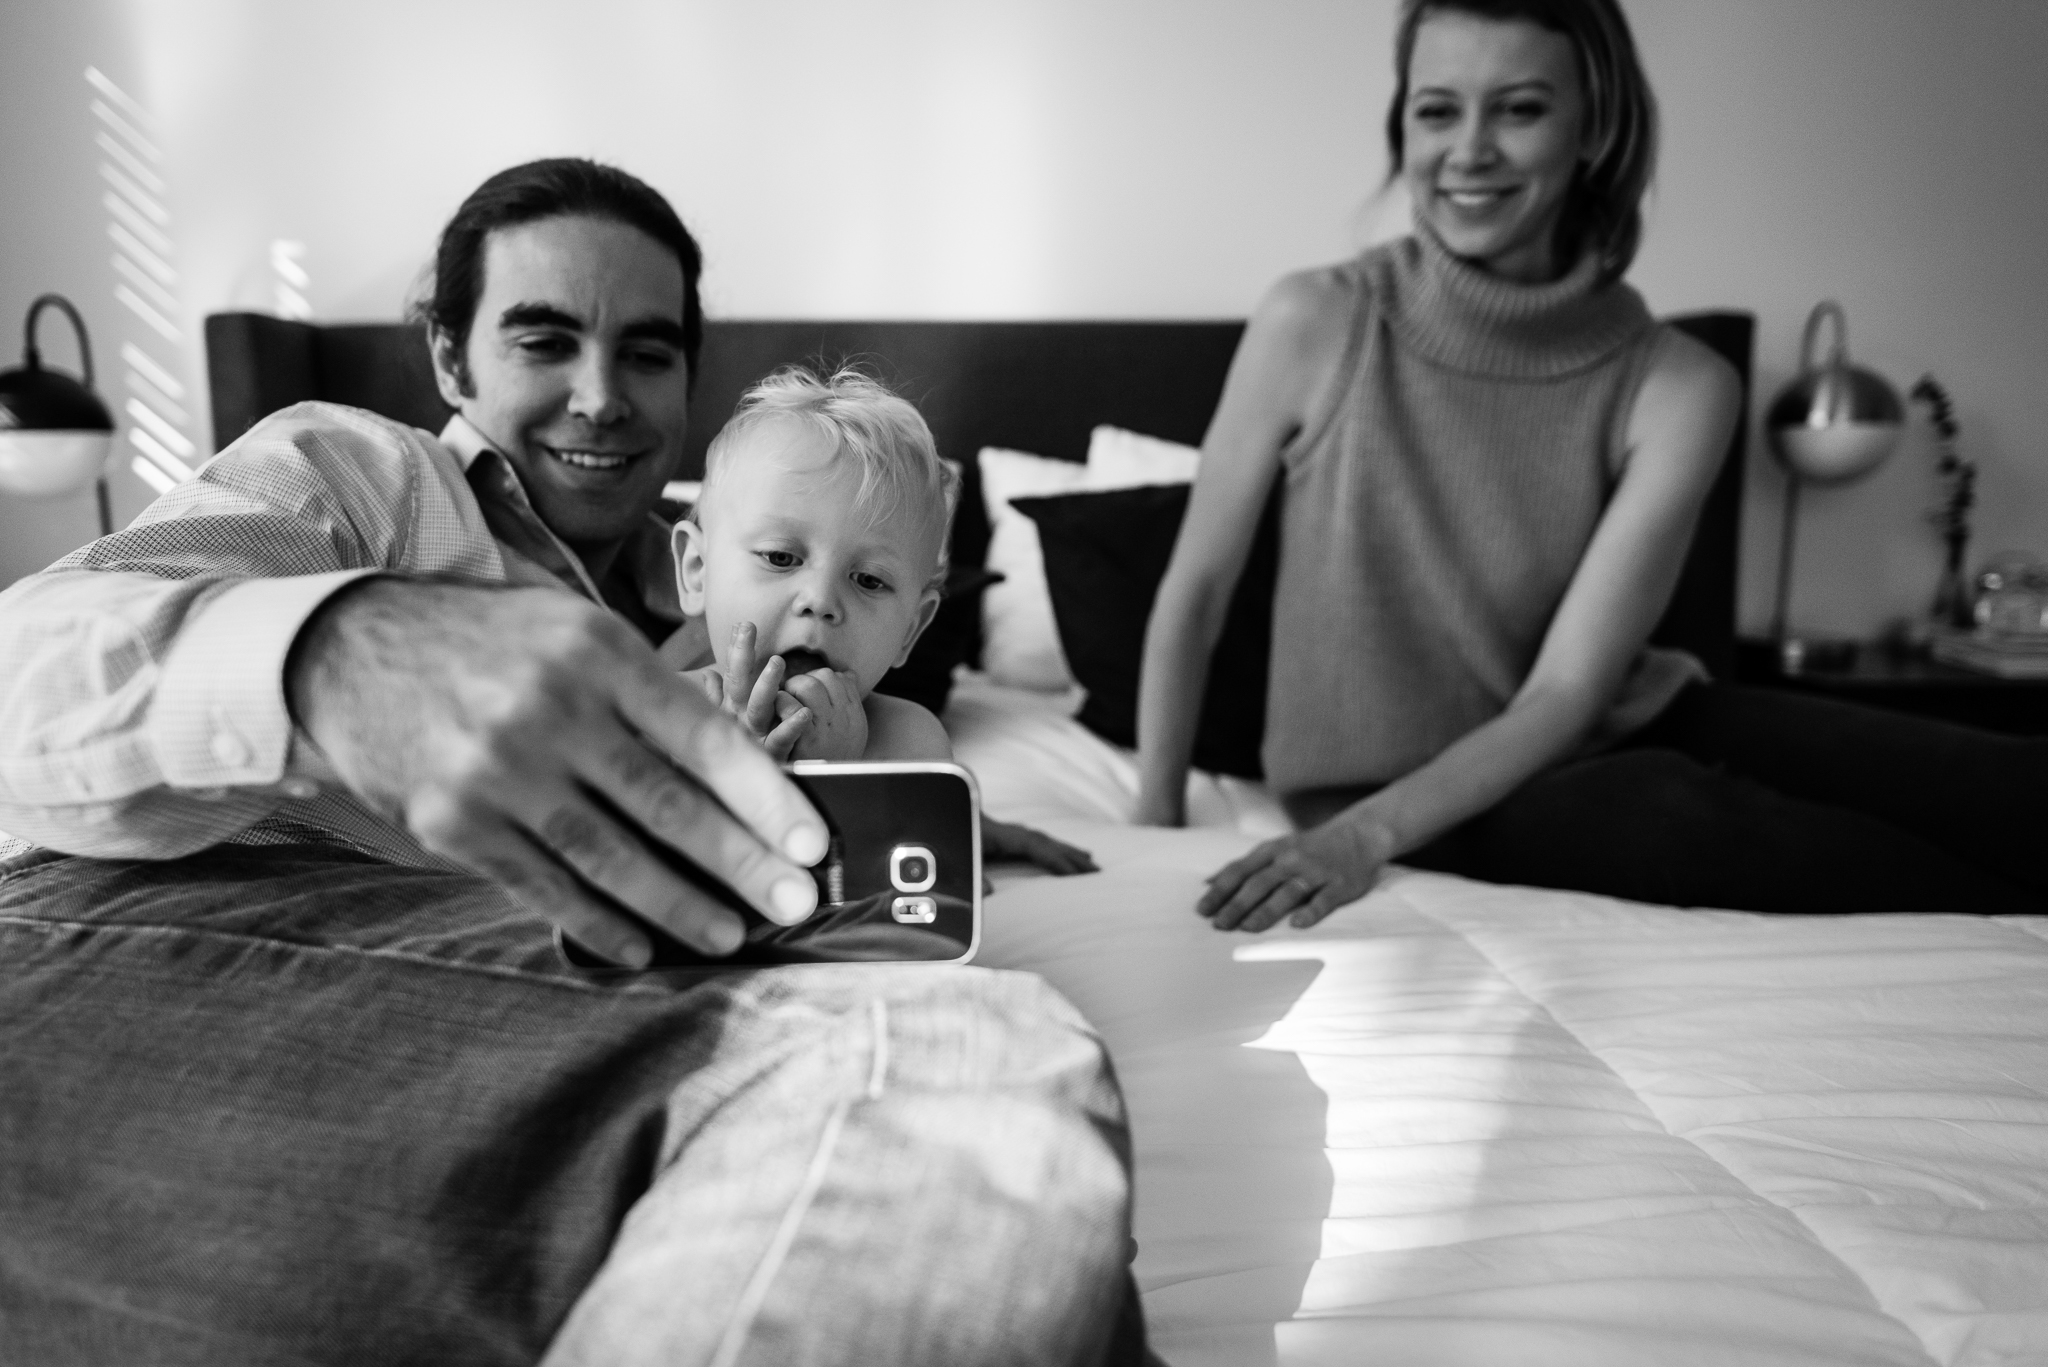 Parents playing with baby and smart phone by Washington, DC Family Photographer Nicole Sanchez